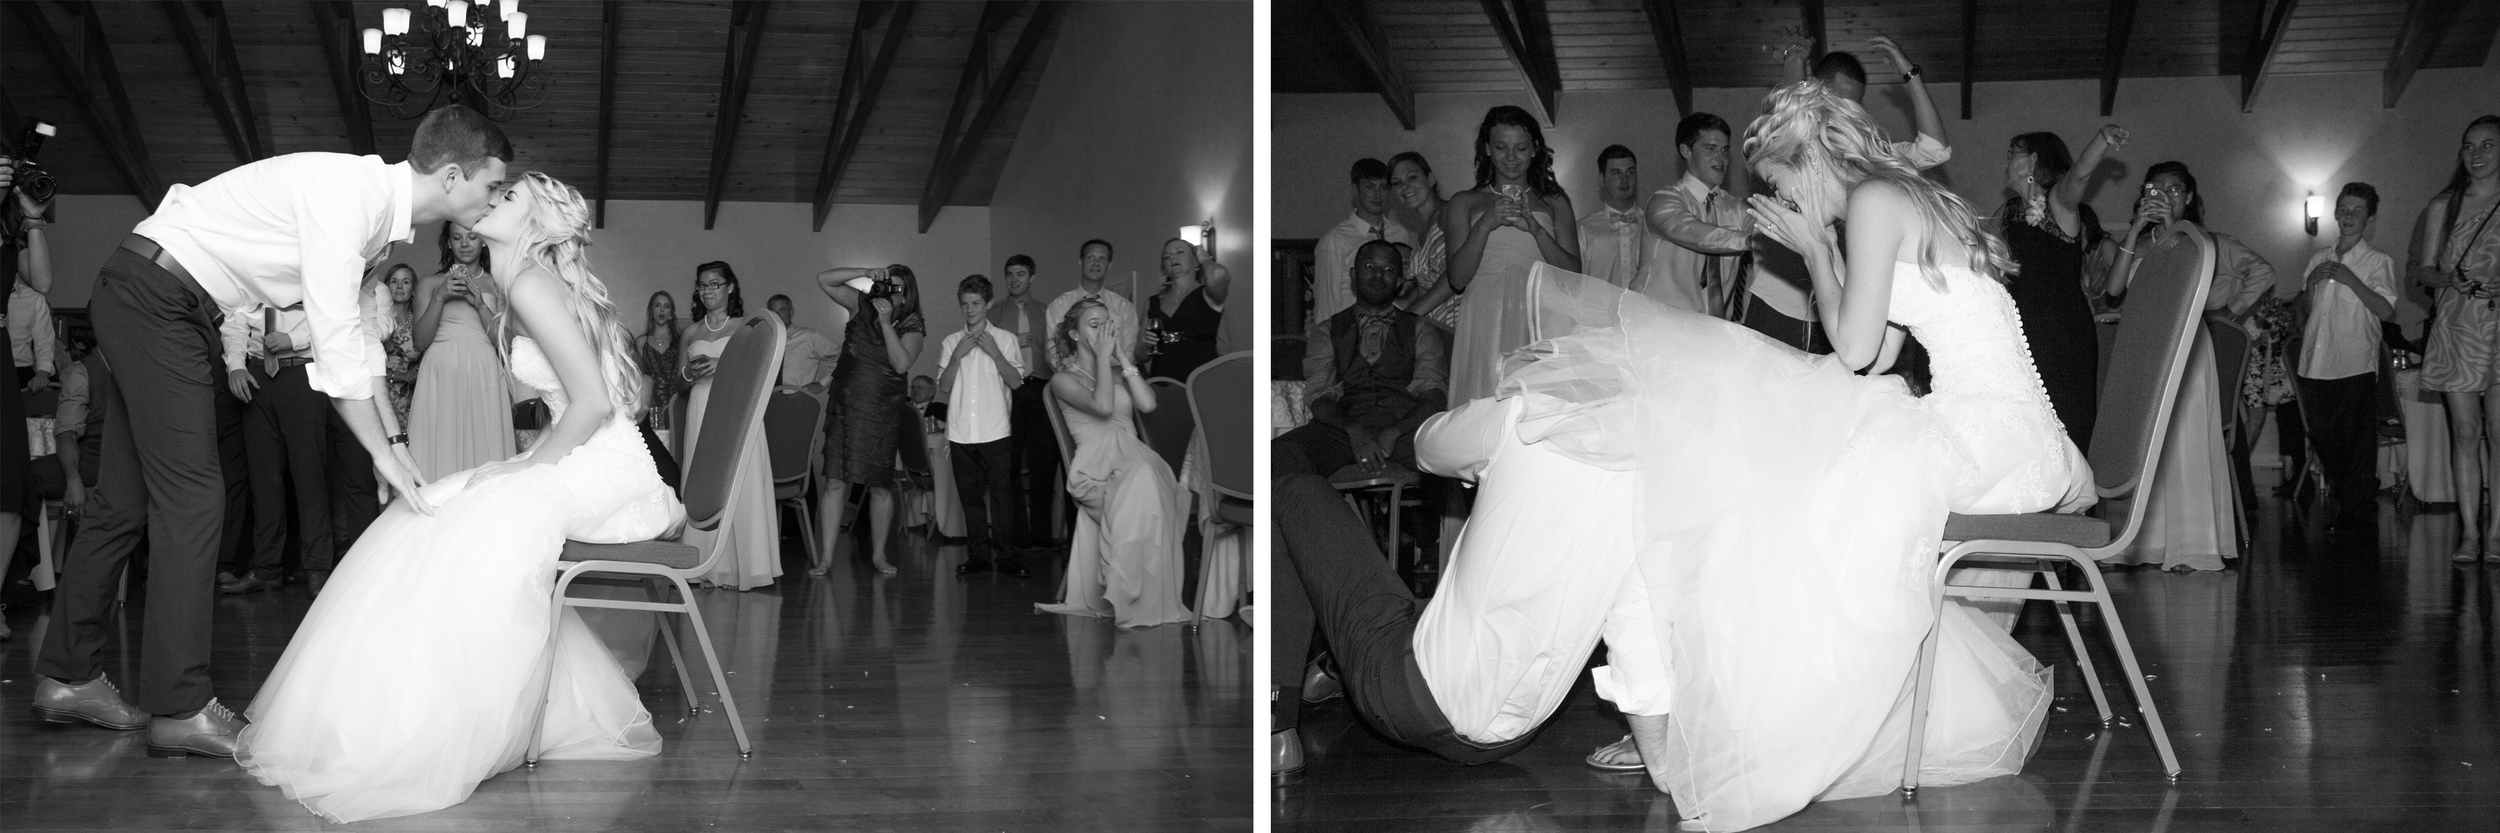 The garter retrieving was way more exciting than the garter toss!